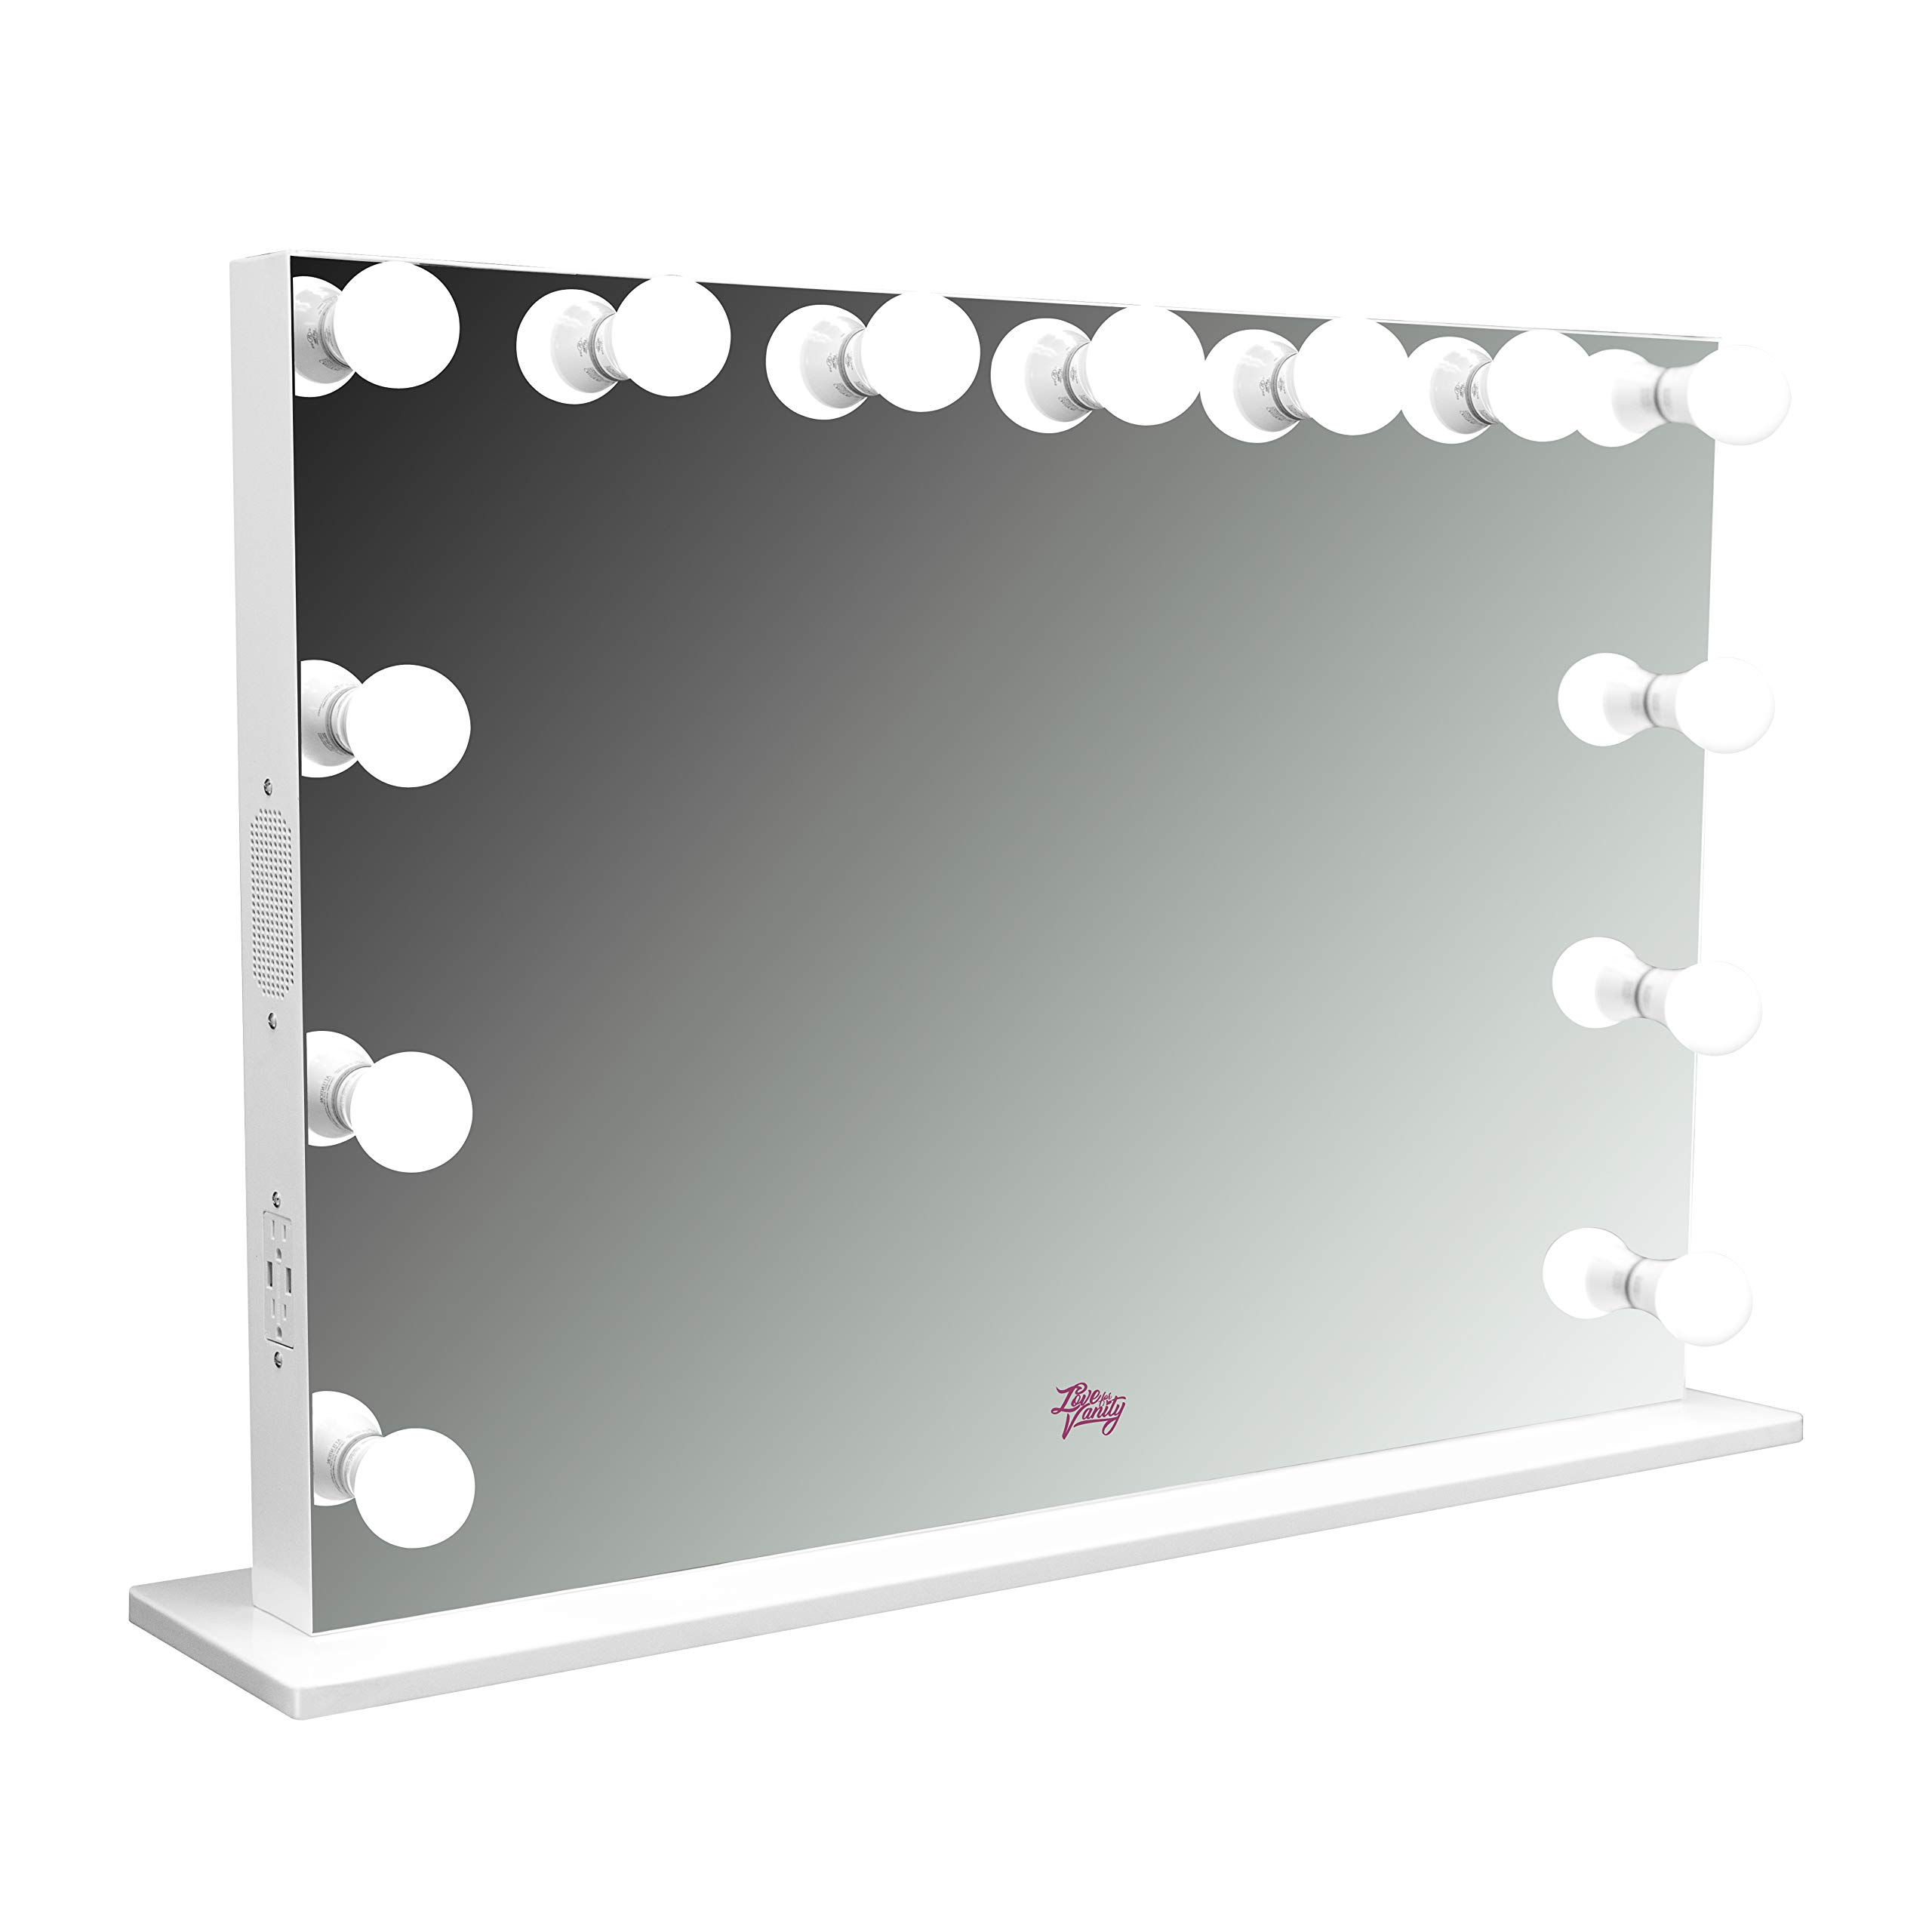 LFV Selena XL Vanity Mirror w/Bluetooth, Dimmable LED Bulbs, 2 120v Outlets and 2 USB Ports